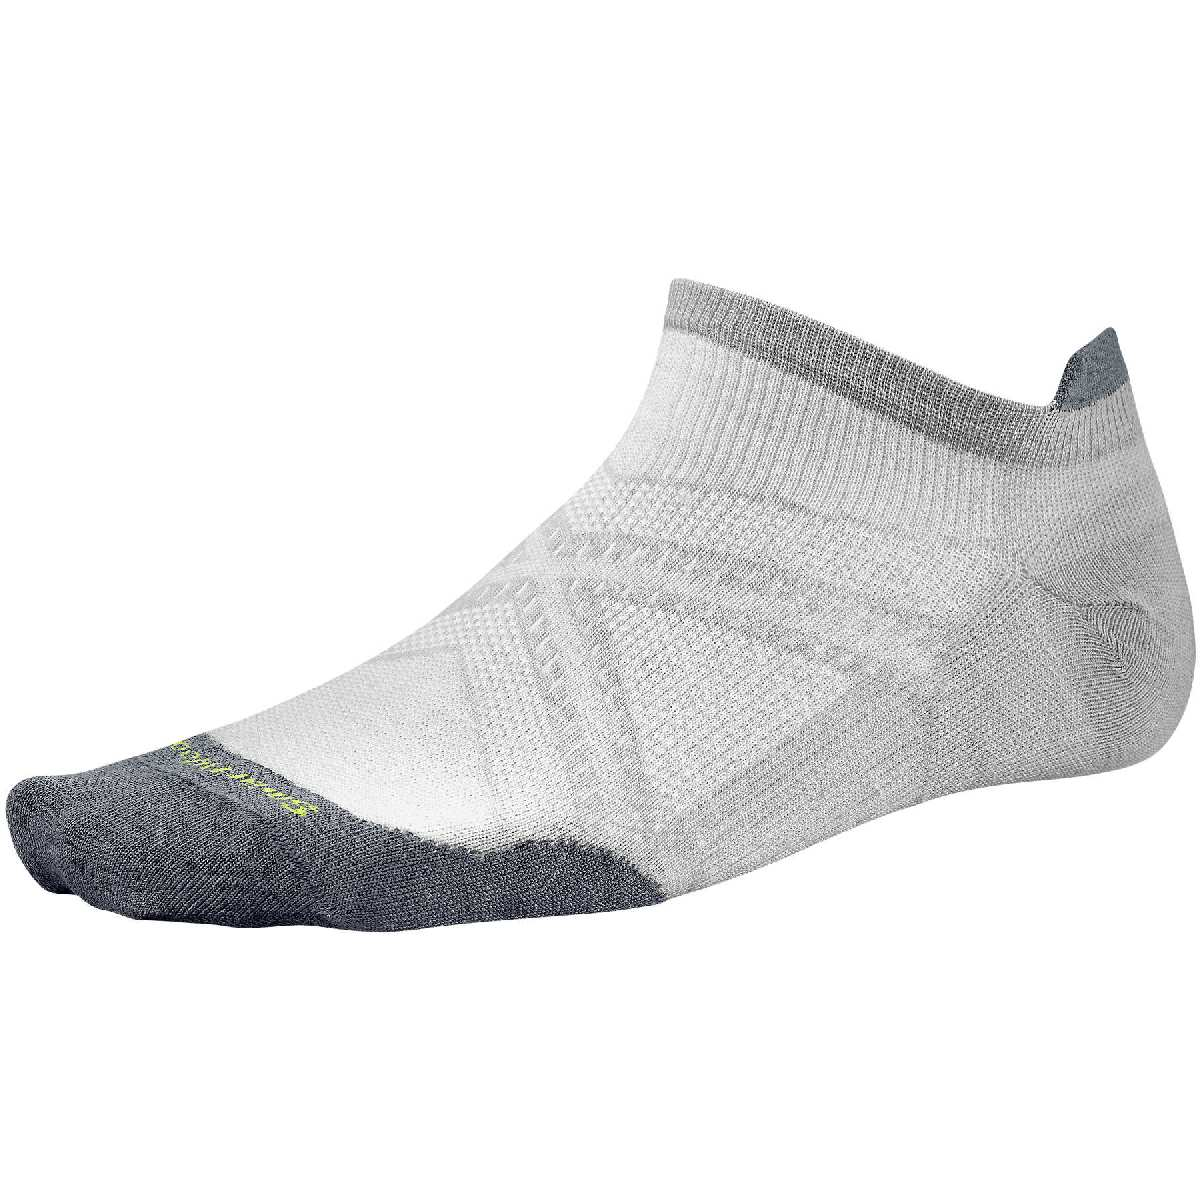 SmartWool PhD Ultra Light Micro Running Sock Size M Silver U.S.A. & Canada